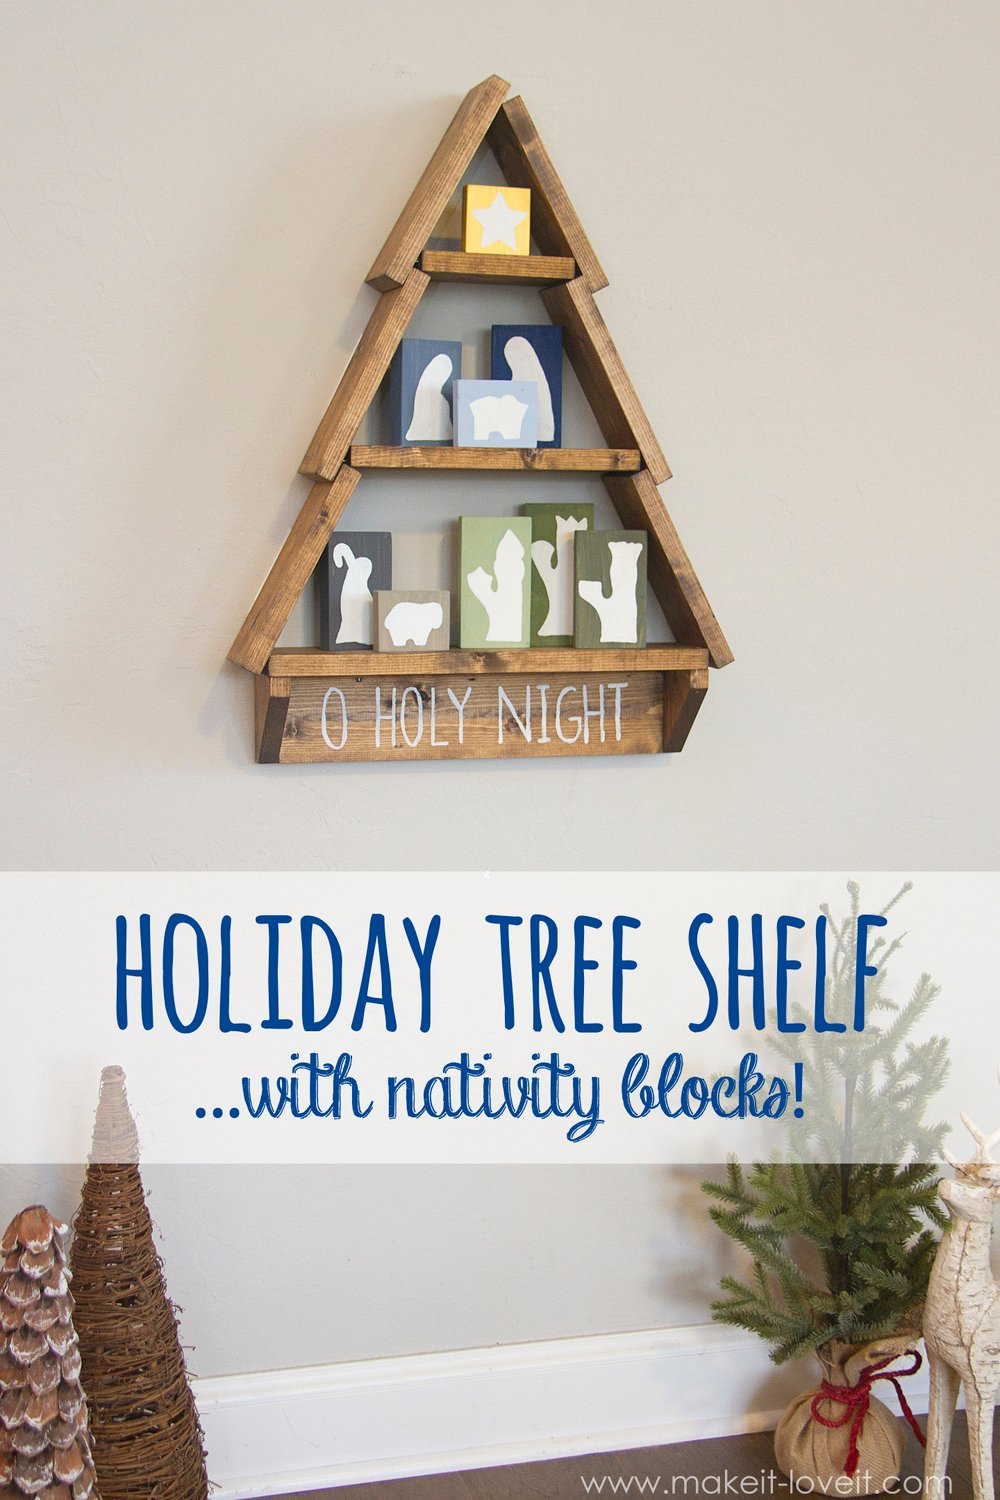 Diy holiday tree shelf…with nativity blocks!